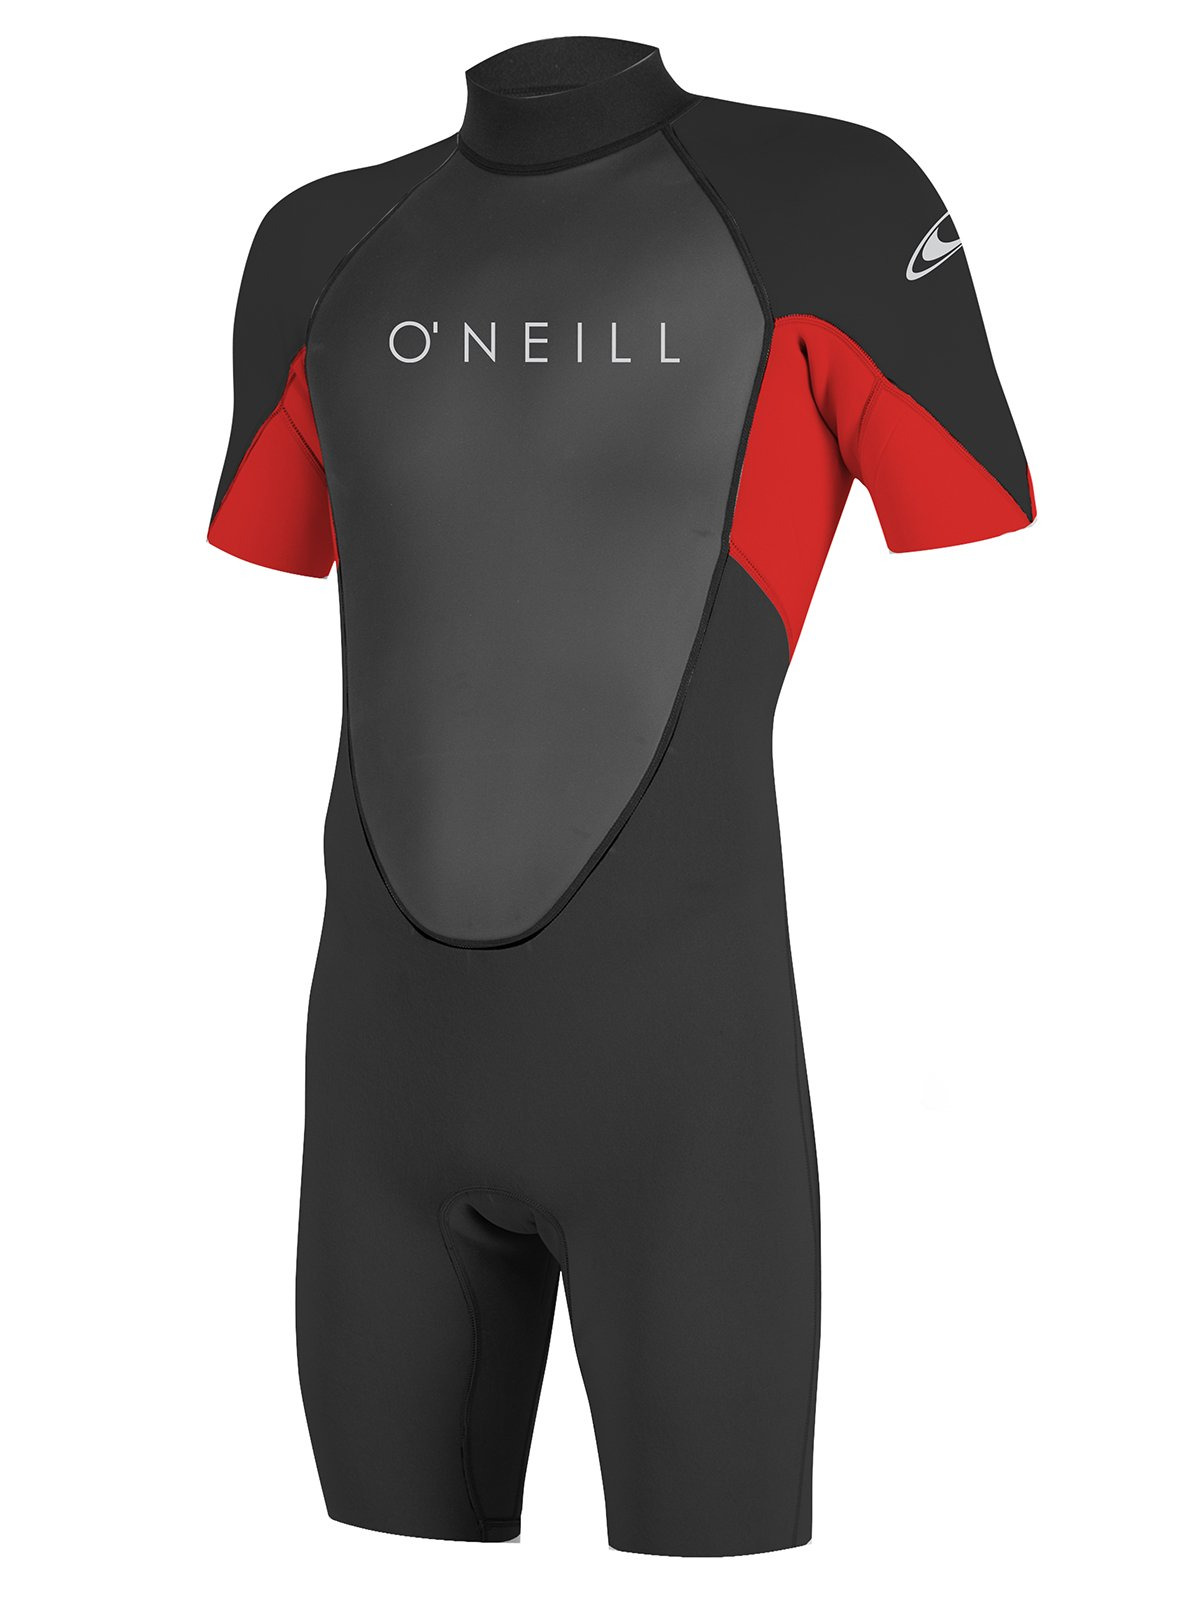 O'Neill Reactor-2 men's spring L Black/red (5124A) by O'Neill Wetsuits